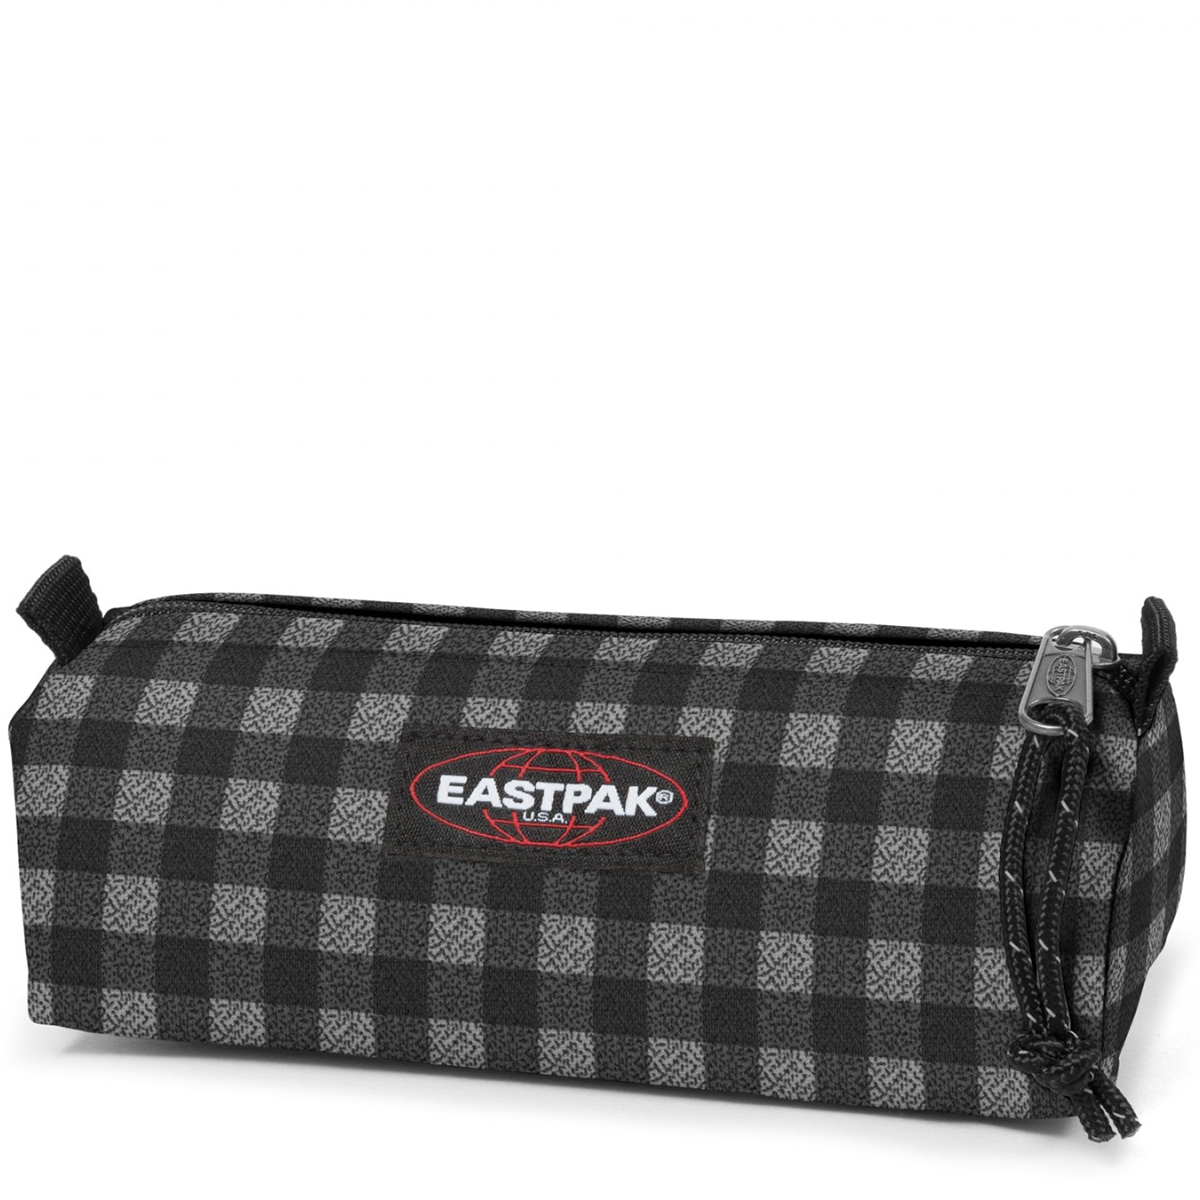 Eastpak - Trousse simple Benchmark 20 cm checksange black